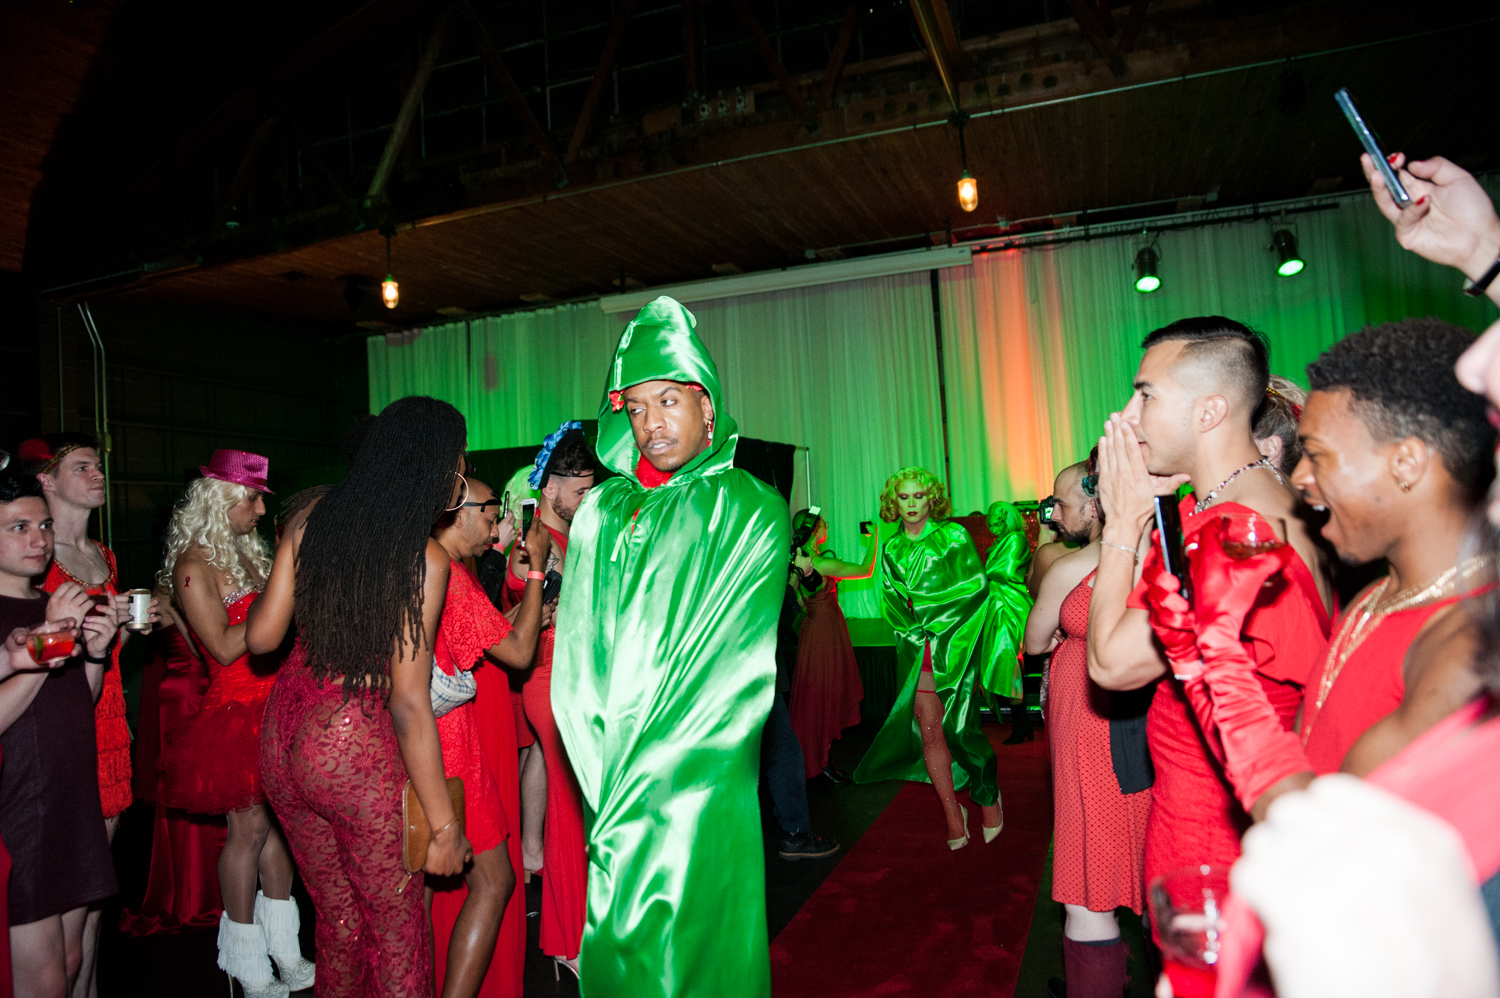 PrideFest's annual Red Dress Party brought out patrons donned in crimson, cardinals and ruby tones - to South Lake Union's event space 415 Westlake. With June being Pride Month, you know the parties are just getting started! (Image: Elizabeth Crook / Seattle Refined){ }